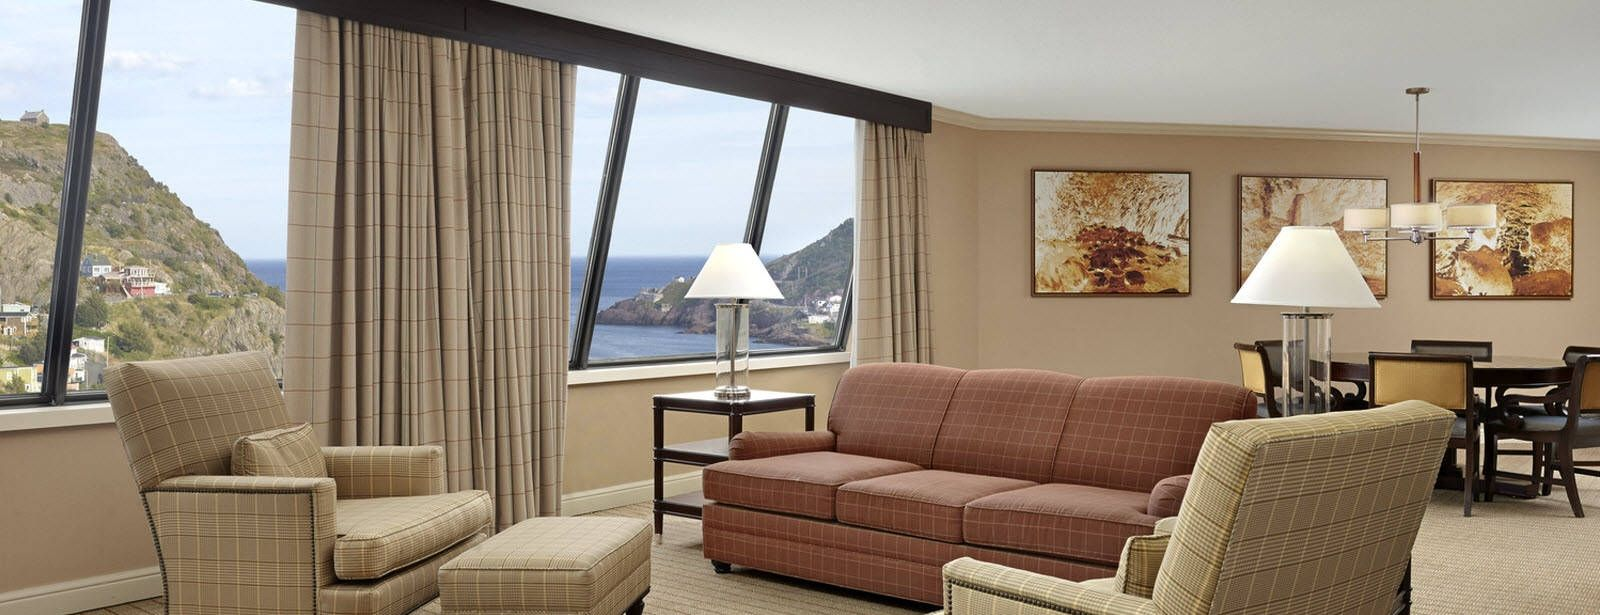 St. John's, Newfoundland Accommodations - Admiral Suite